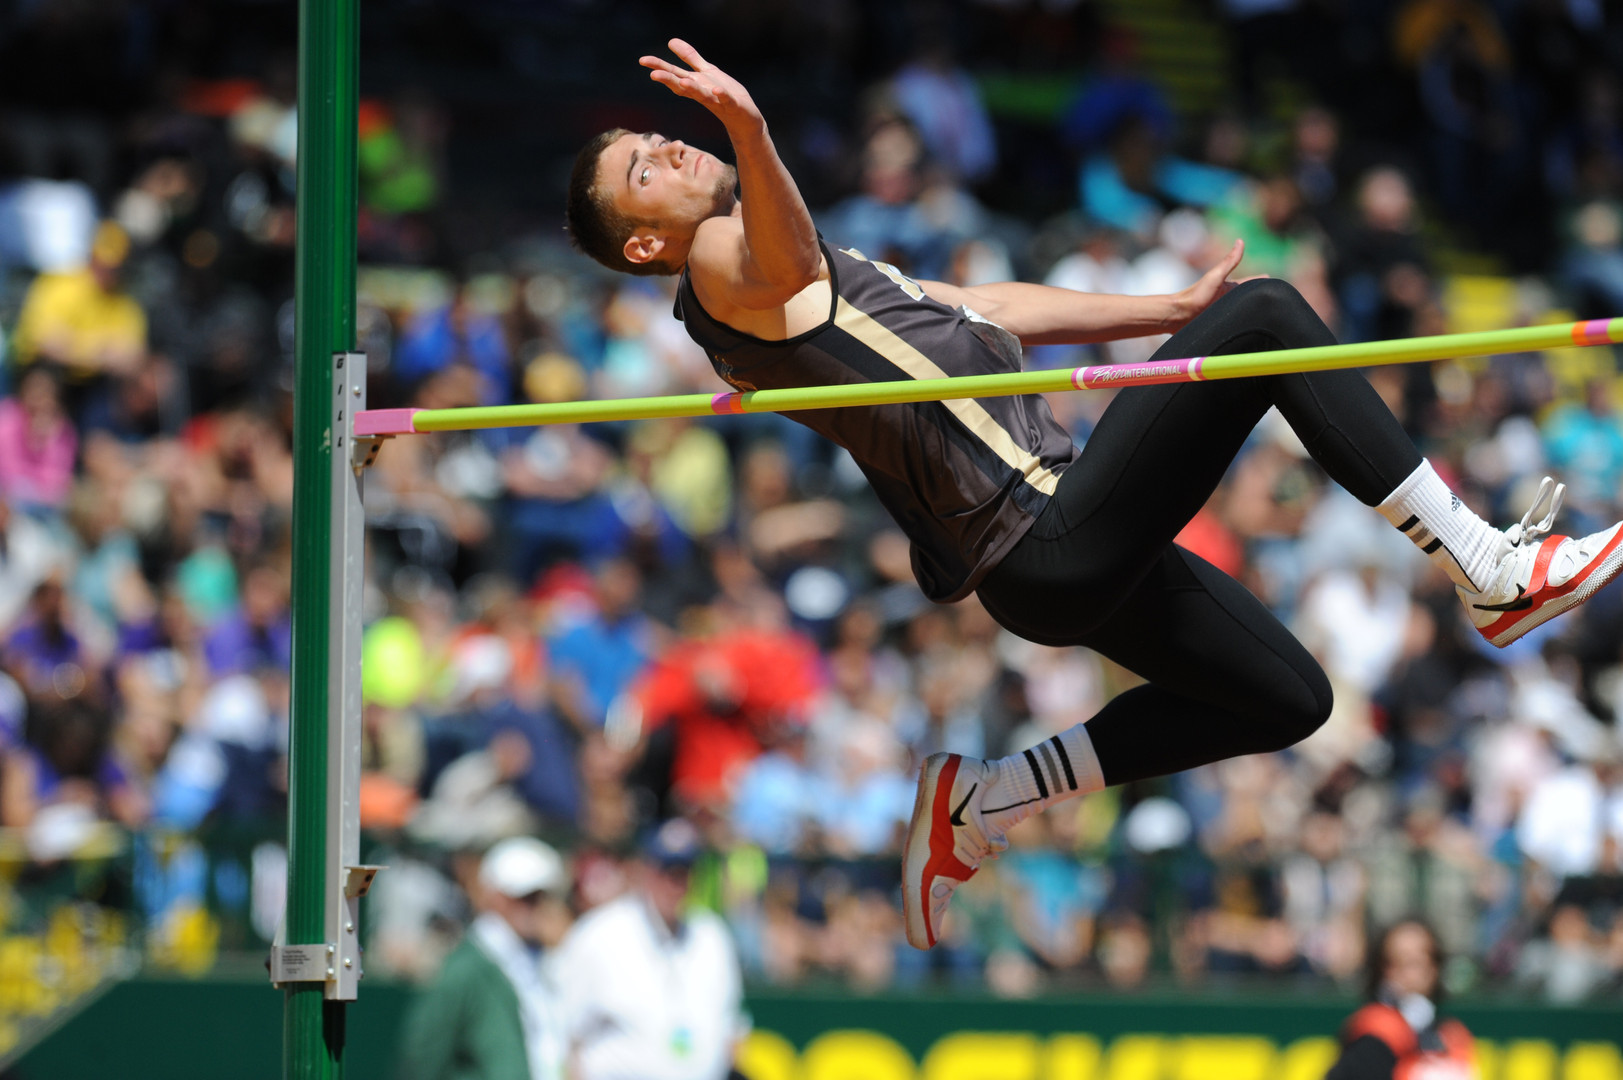 North Bend High School's Wyatt Cunningham attempts a height during the Class 4A state track meet Saturday. Cunningham won his second straight title in the event. (The World newspaper)